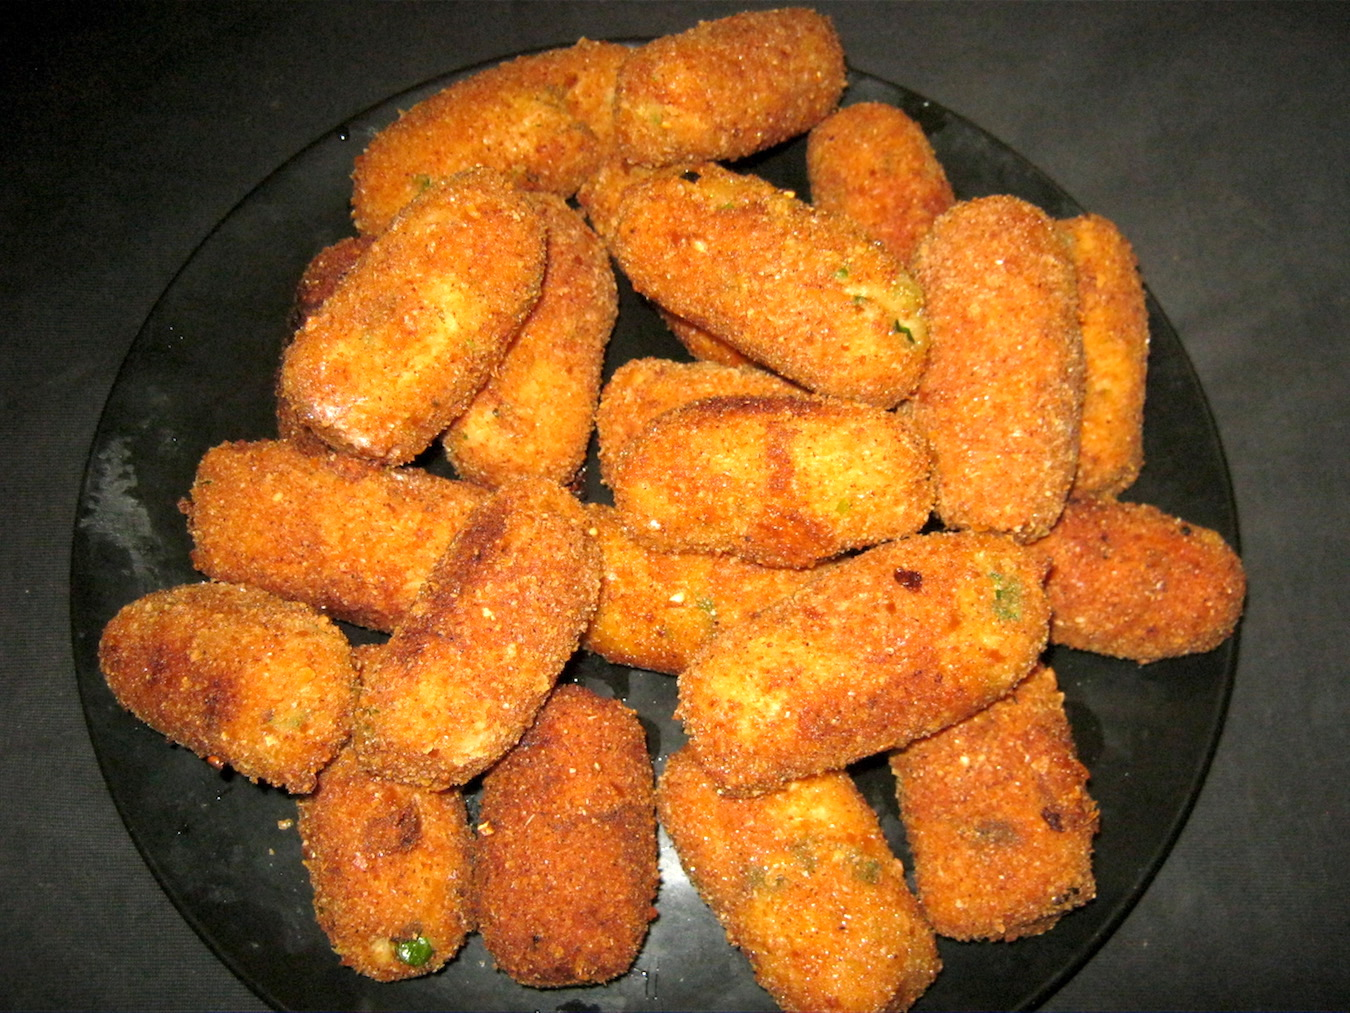 Dutch Chicken Croquettes on a black plate